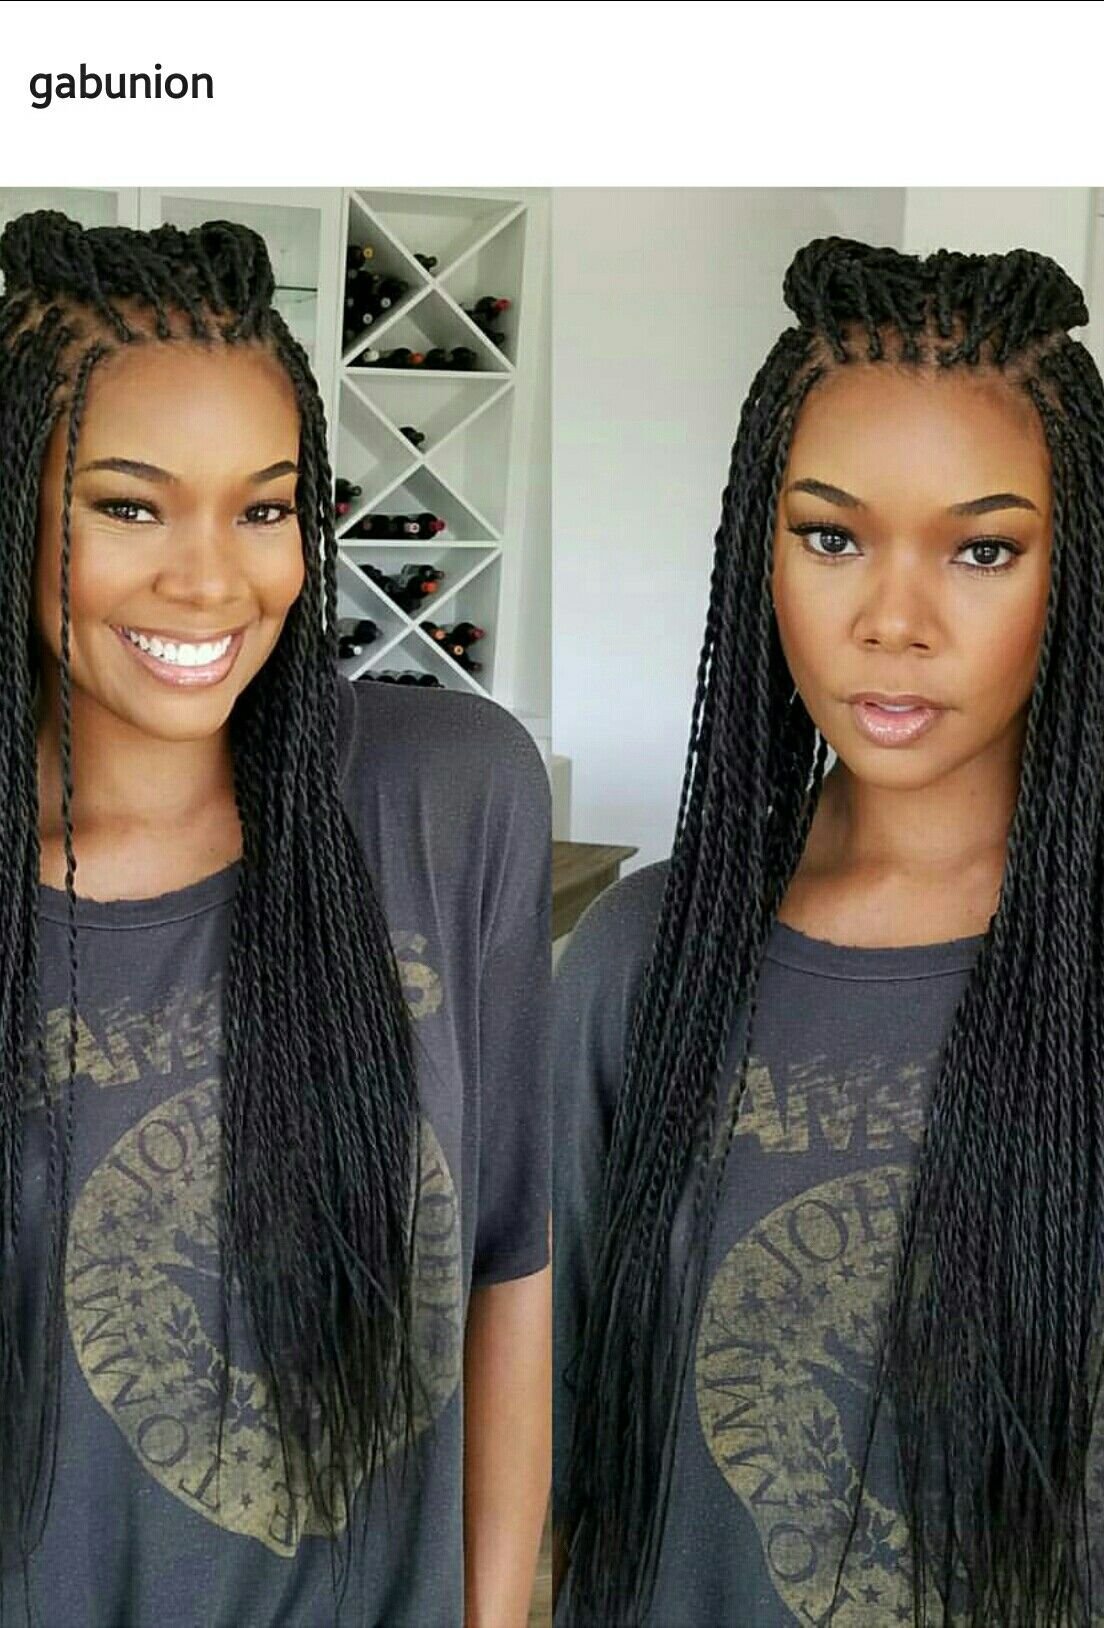 Gabrielle Union in braids